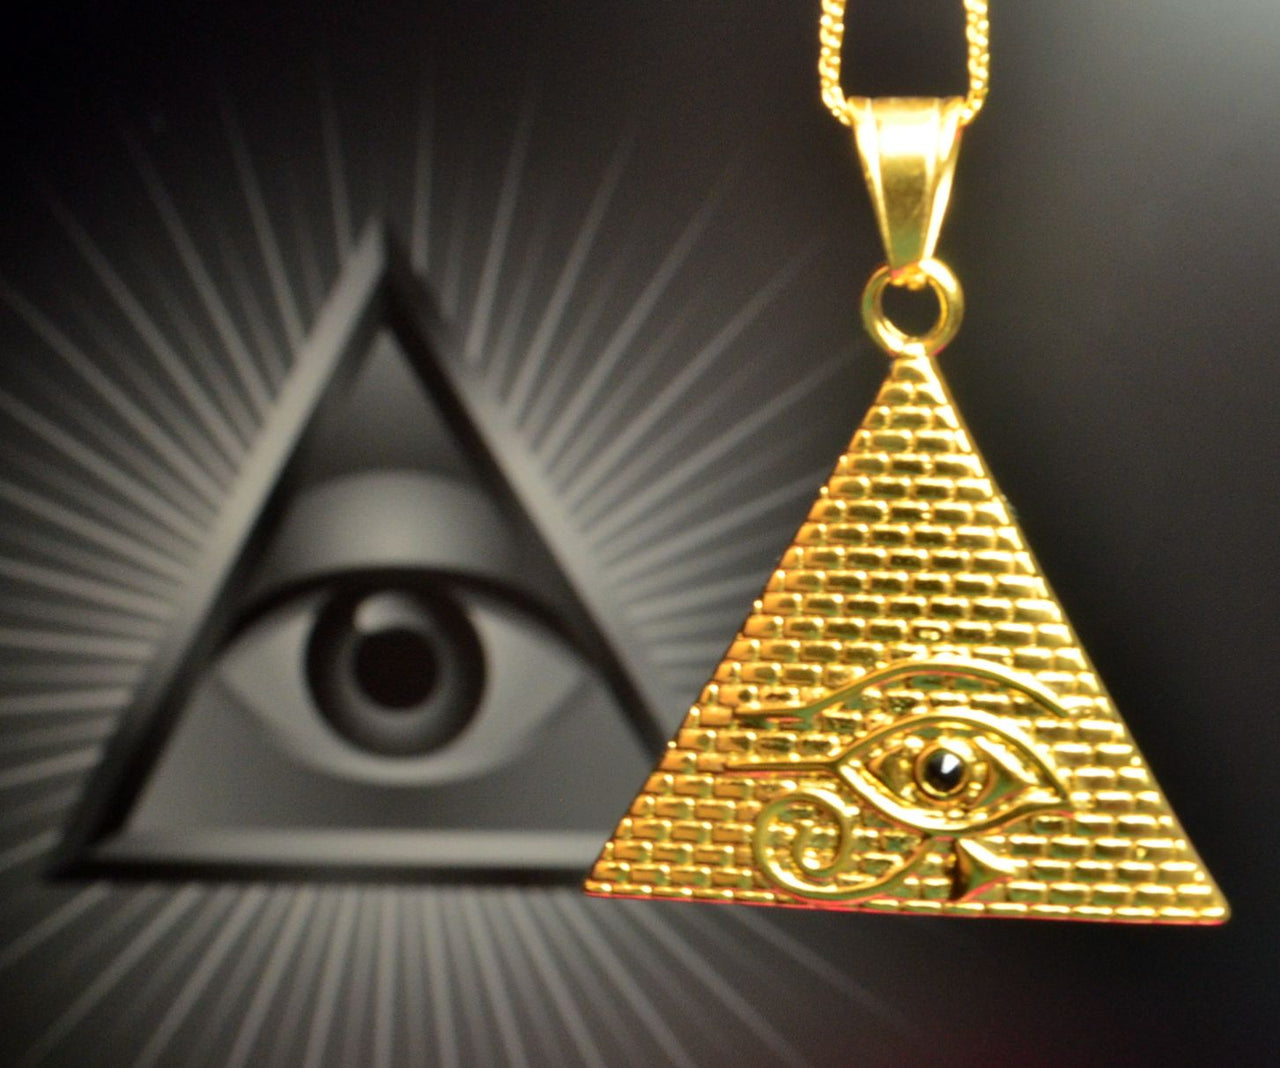 ce506fb74dce8 All seen eye, Masonic Eye, Eye of Providence, Triangle eye Gold plated  stainless steel Pendant Necklace